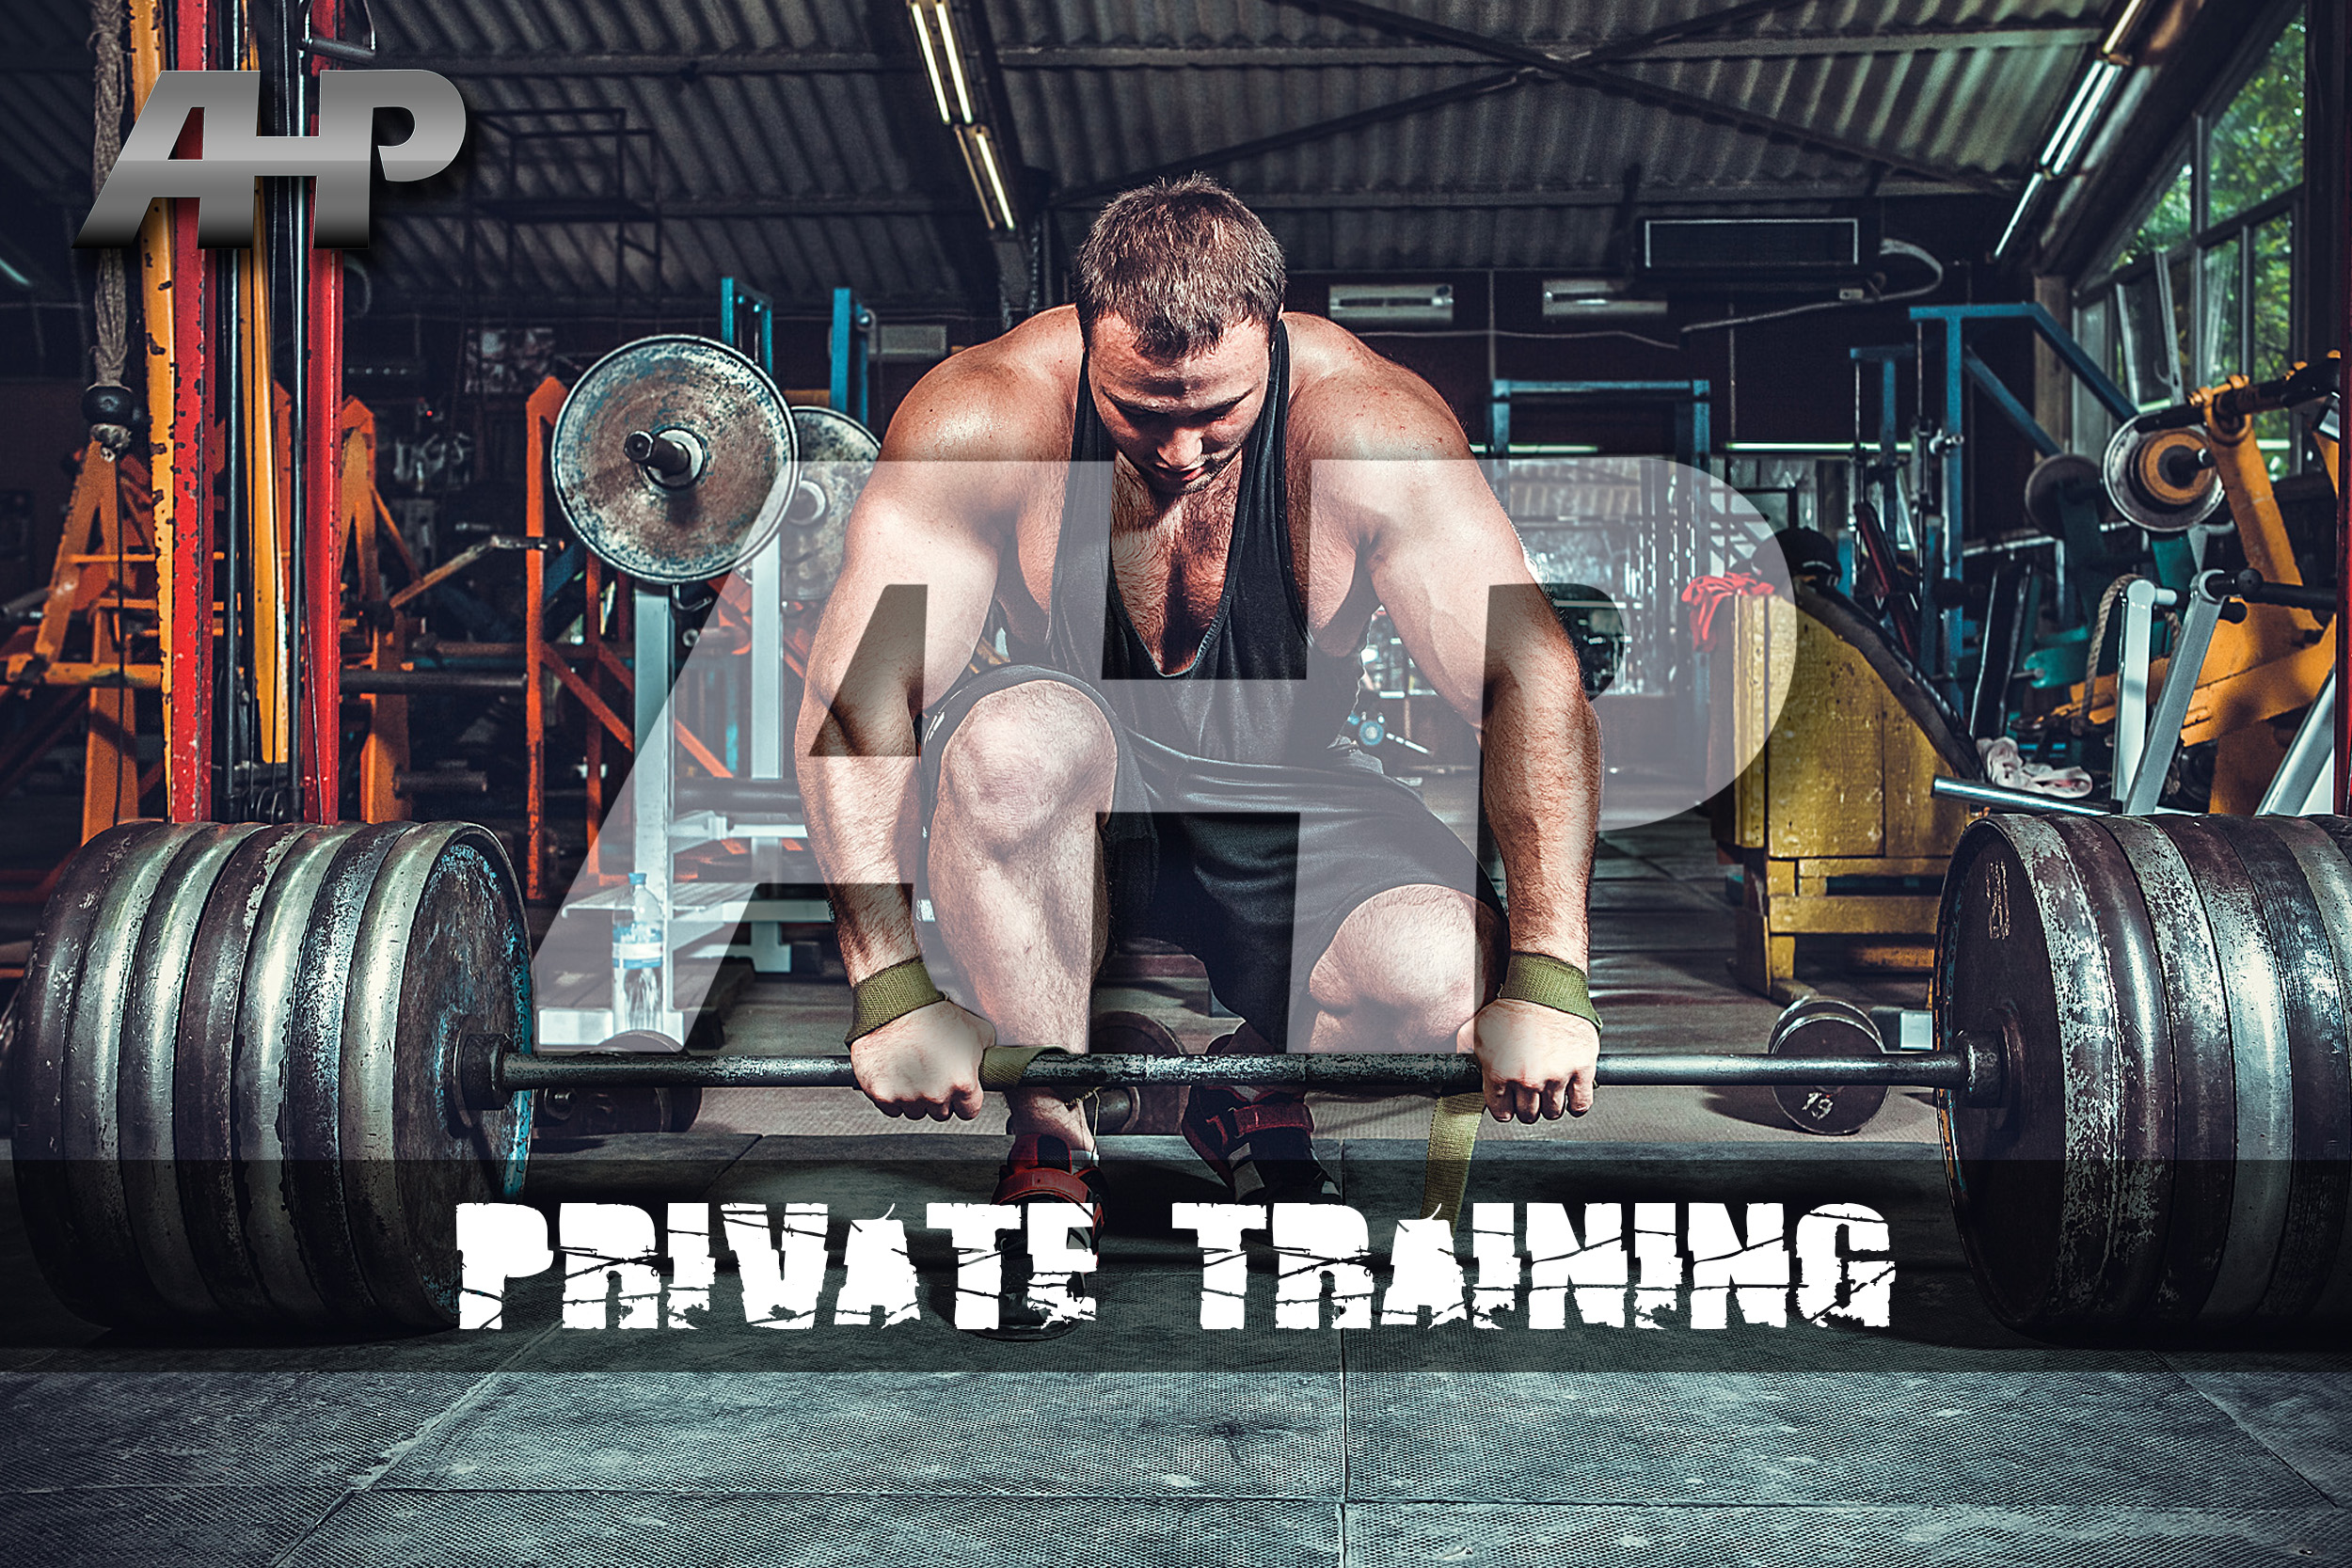 Private Personal Training - AHP.jpg